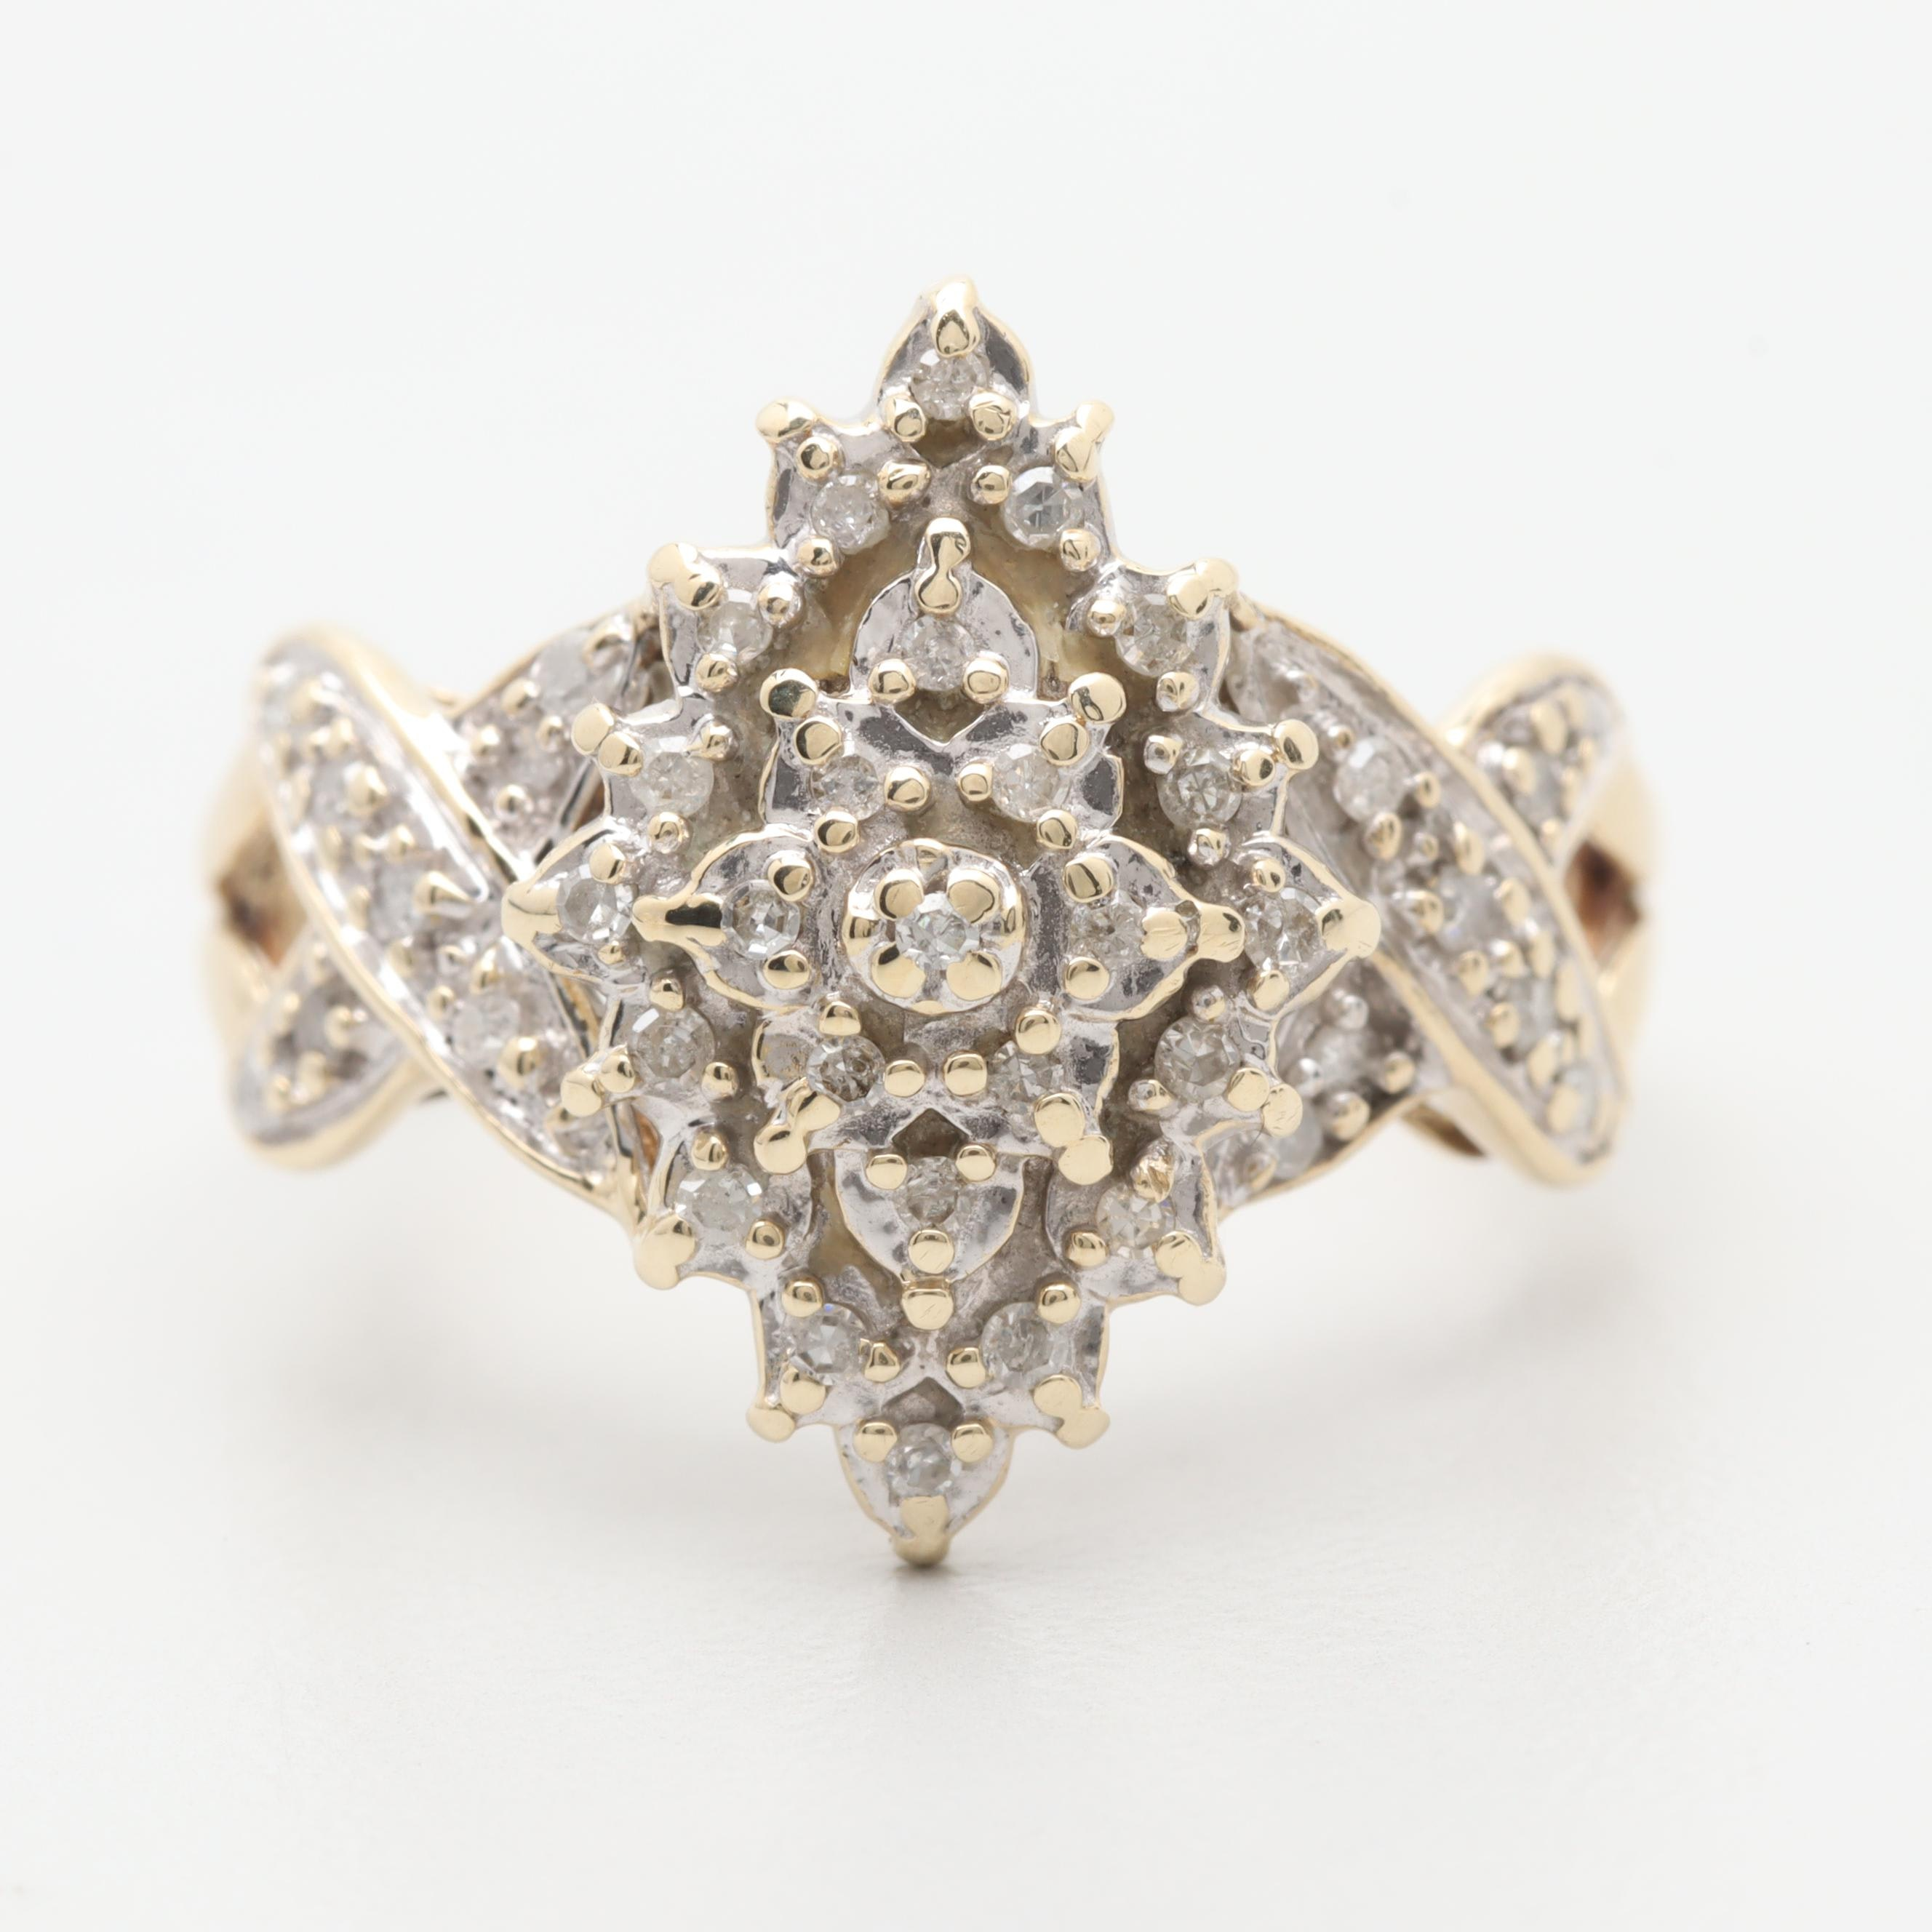 10K Yellow Gold Diamond Ring With White Gold Accents